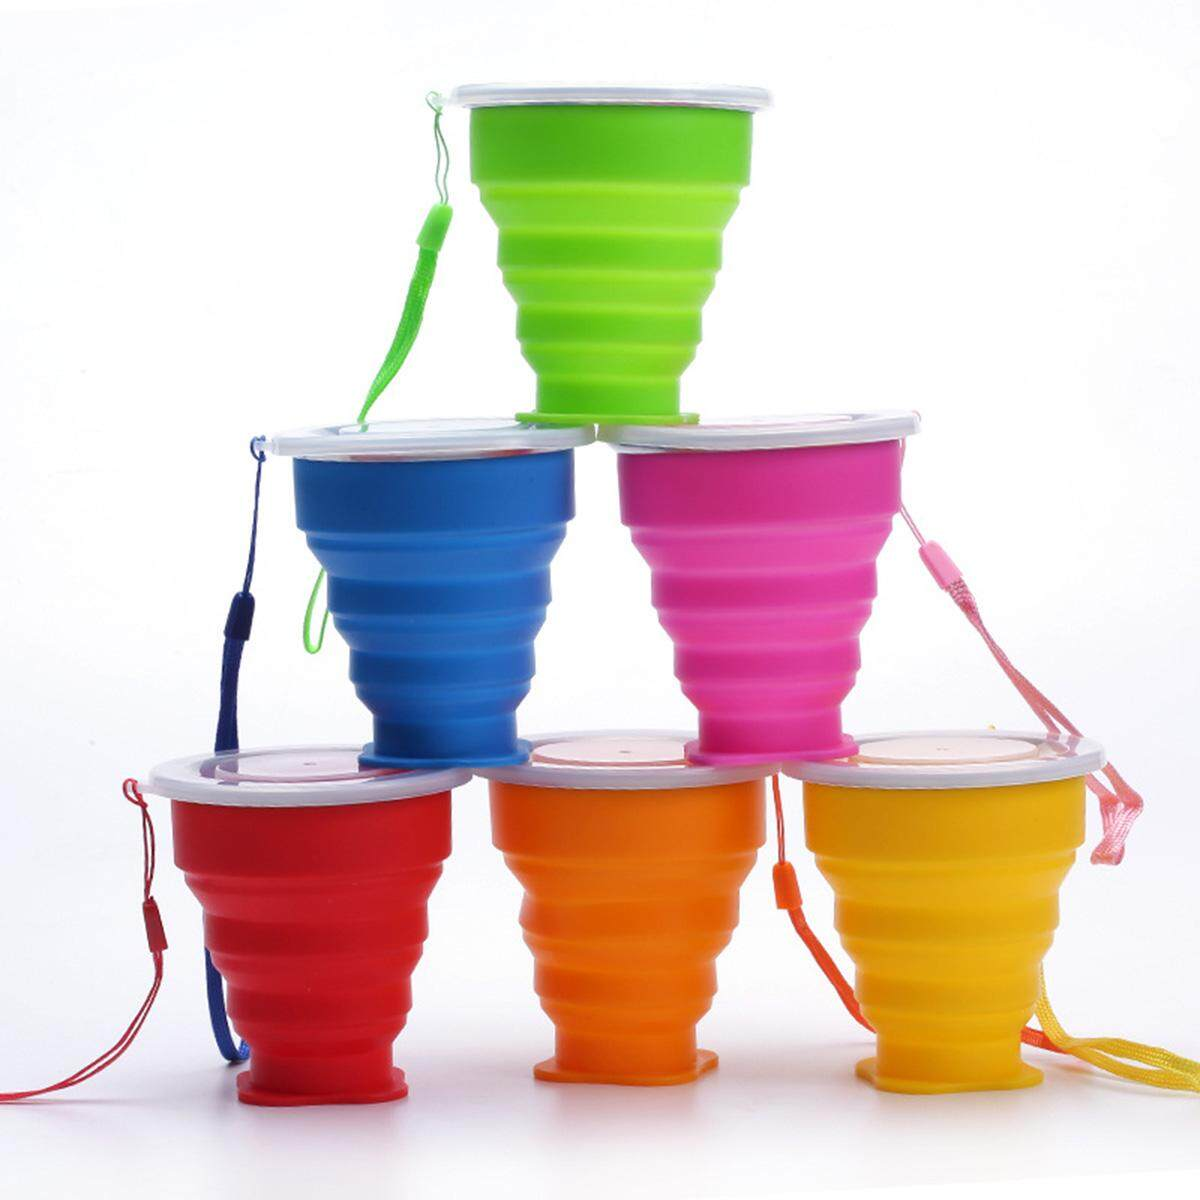 Silicone Retractable Folding Cup 1 Collapsible Travel Camping 200ml By Sunnny2015.